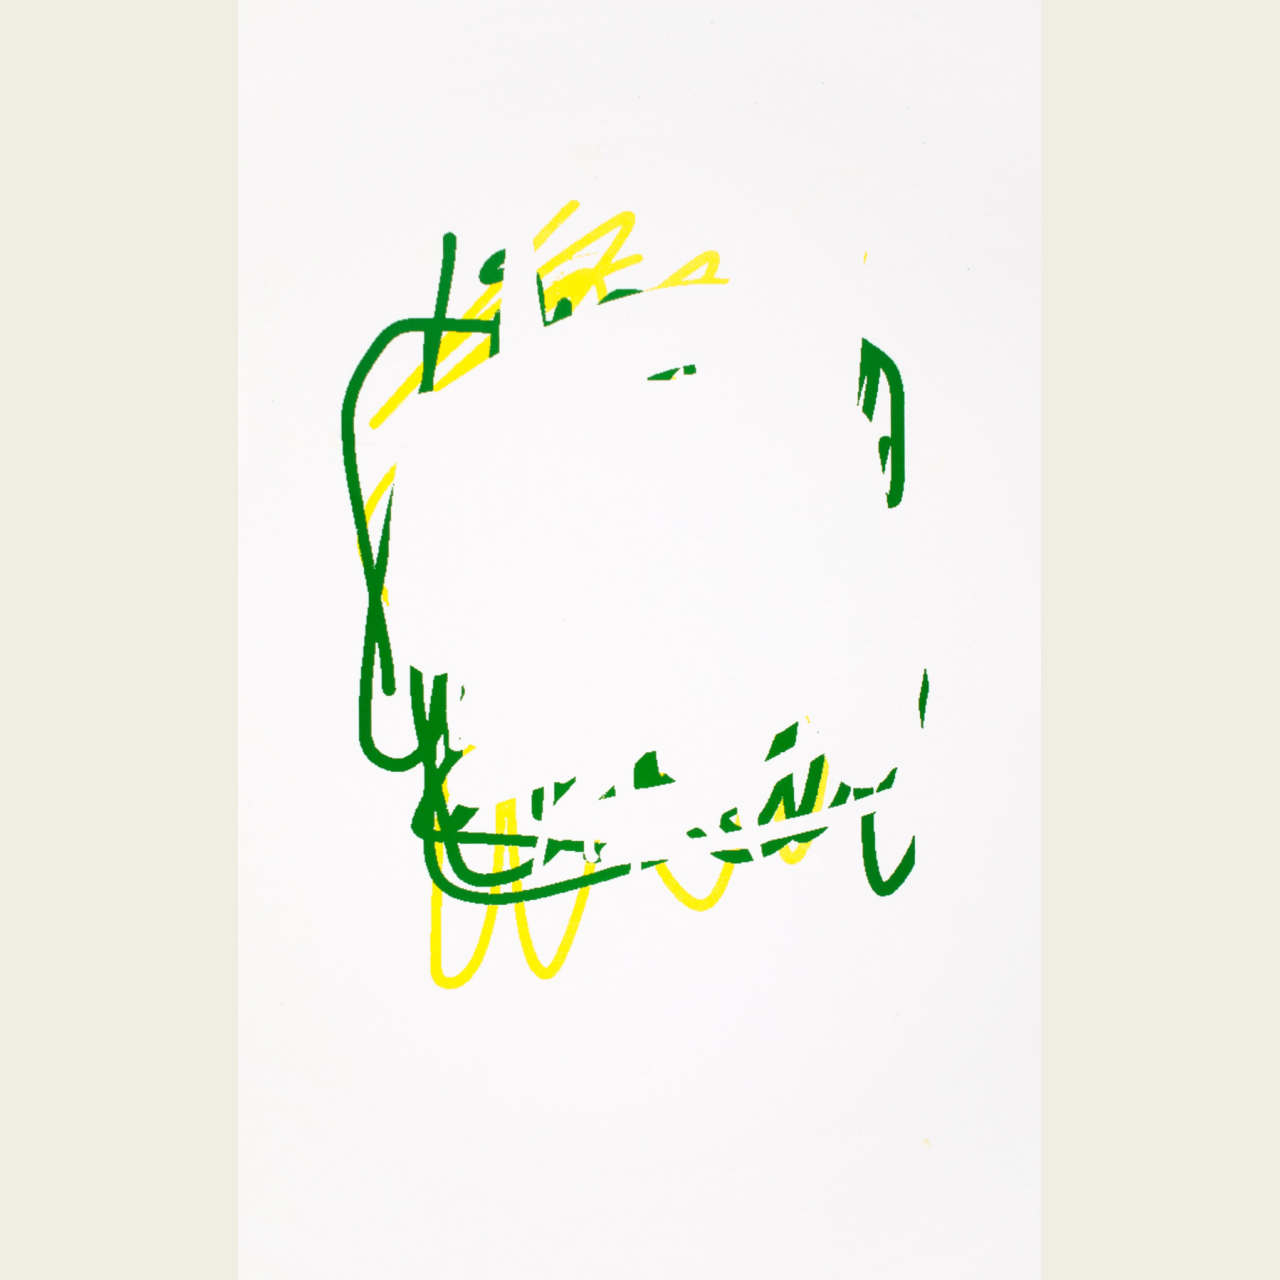 Untitled (color off/green yellow)